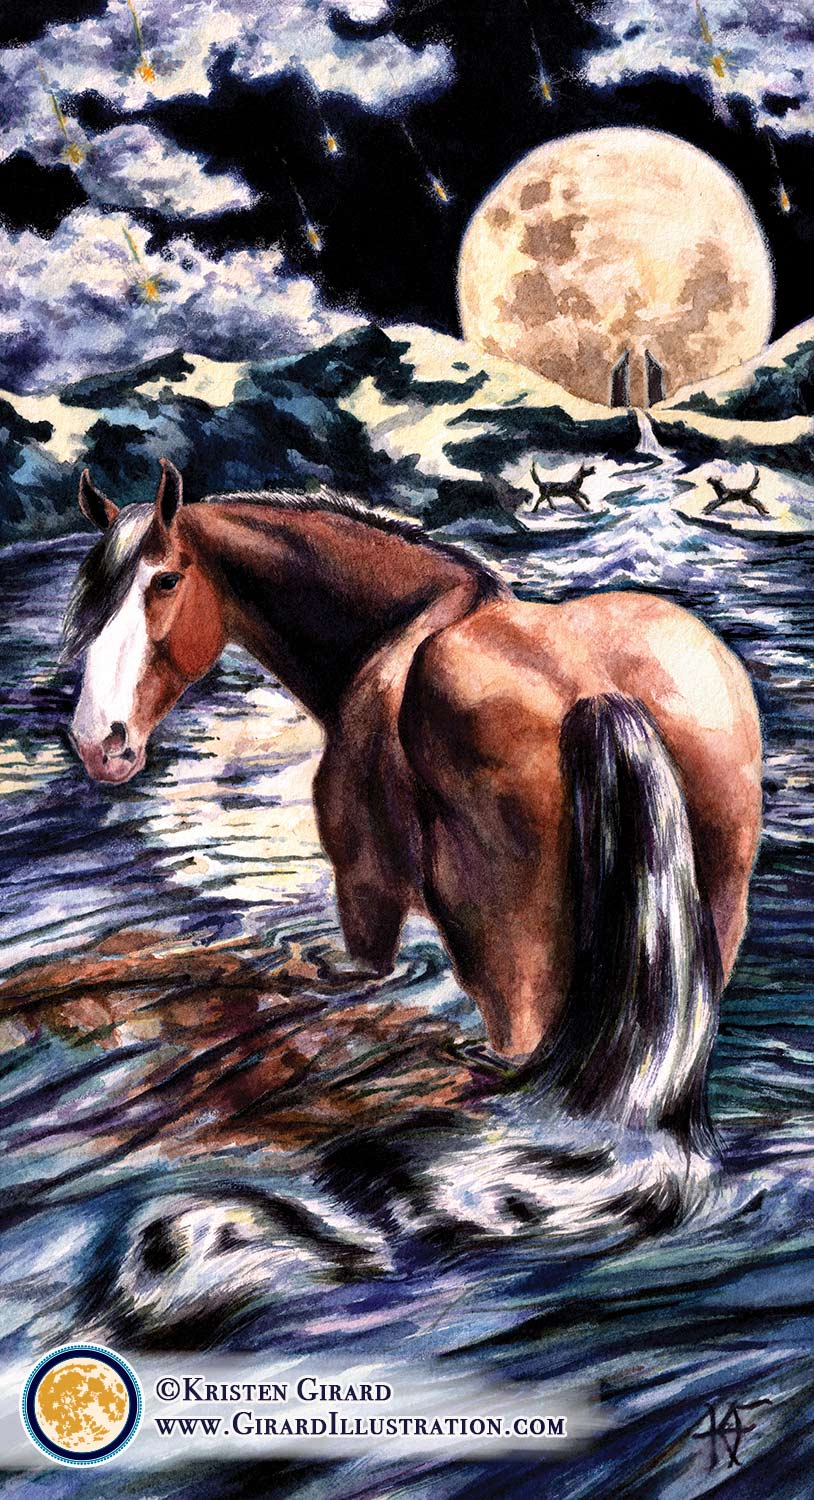 A Clydesdale draft horse wades into flowing blue water under the night sky.  The golden full moon rises behind the mountains as falling stars light up the night. The horse turns and looks at the viewer. Unusually beautiful horse art painted by visionary artist Kristen Girard. © Kristen Girard of Girard Illustration.